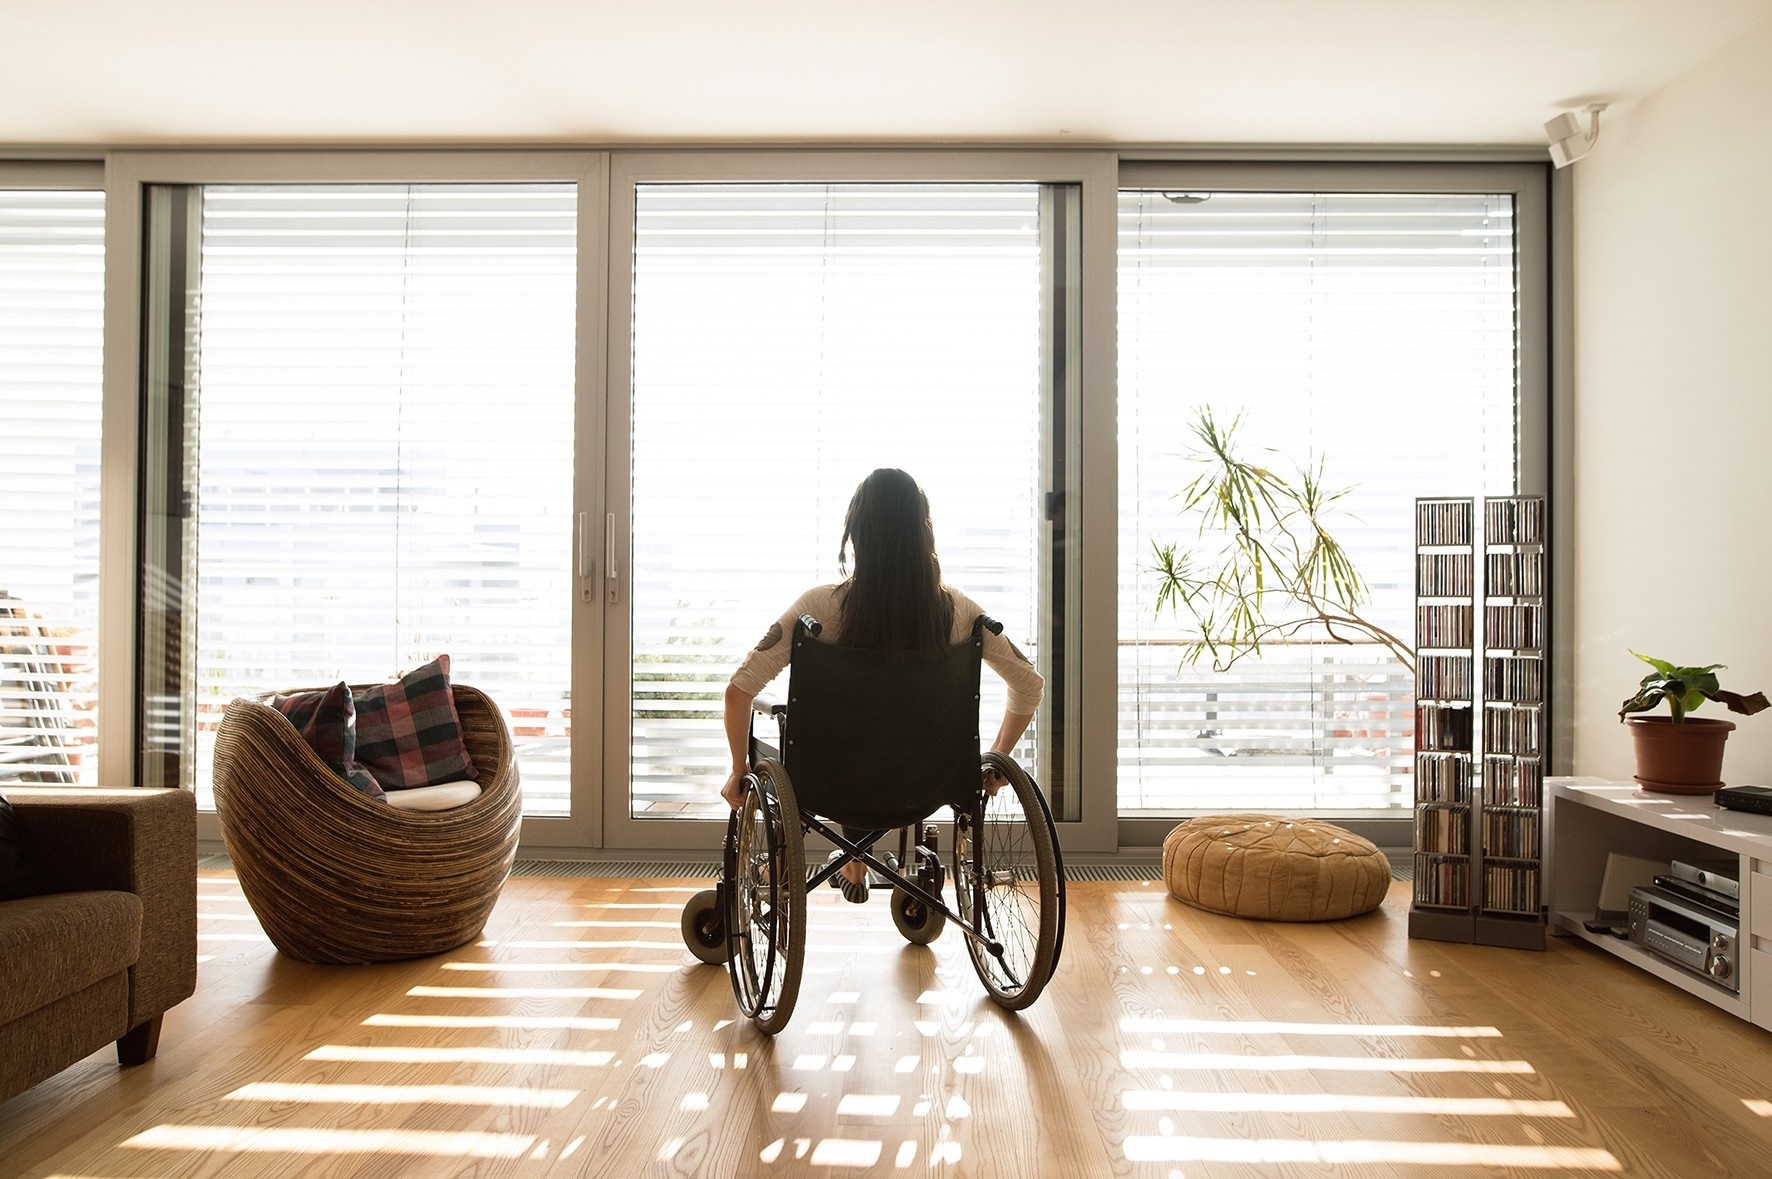 BUREAU VERITAS WELCOMES GOVERNMENT RESPONSE TO CALL FOR IMPROVED DISABLED ACCESS